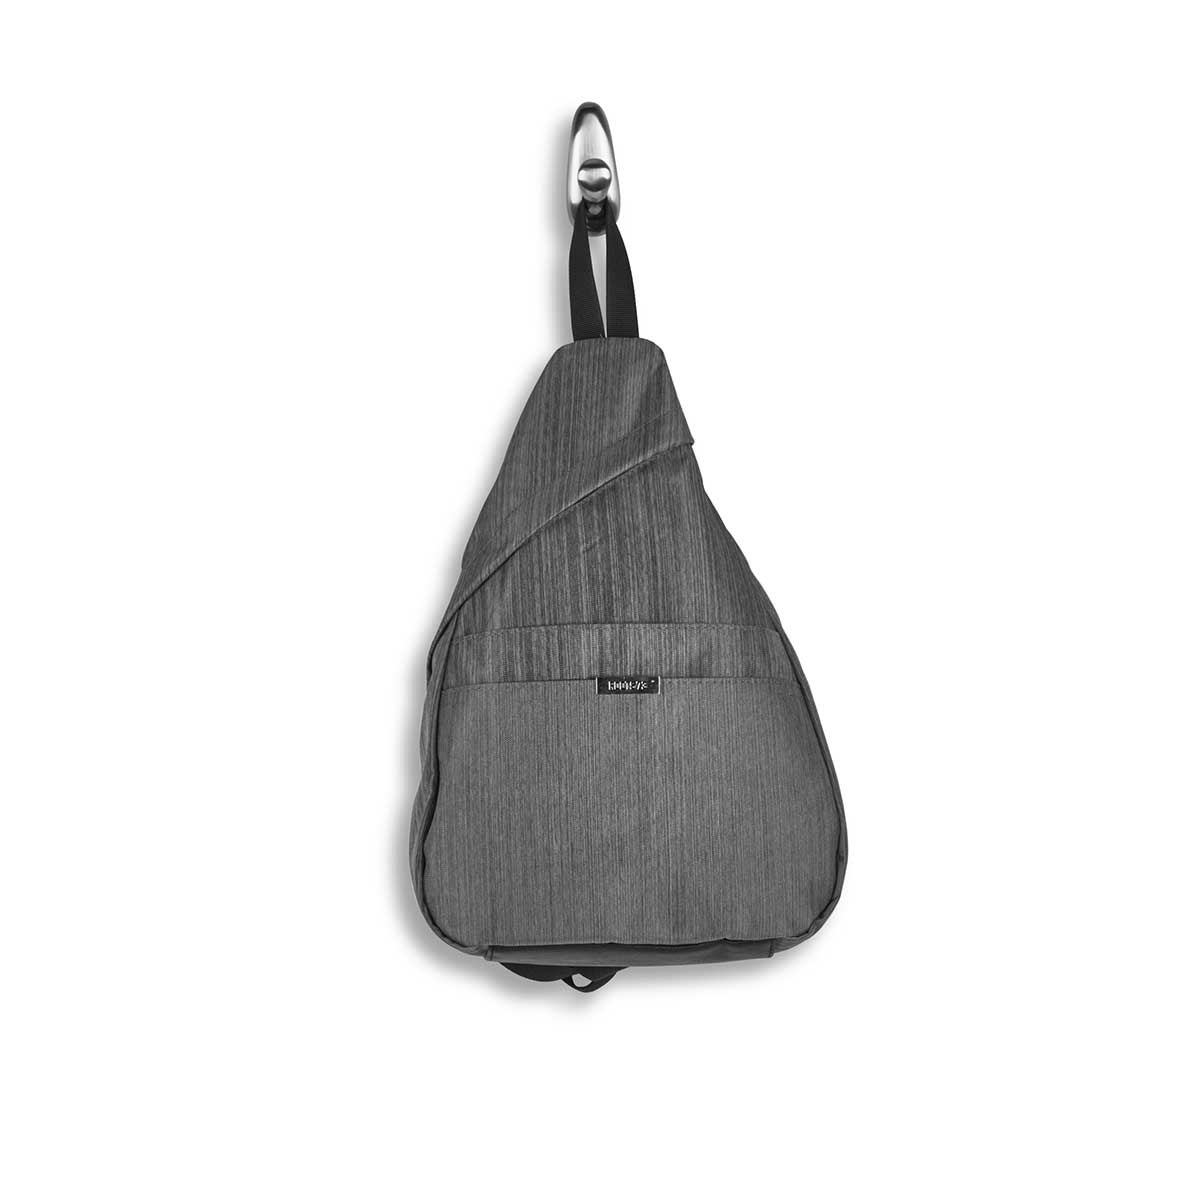 Lds Roots73 grey sling bag